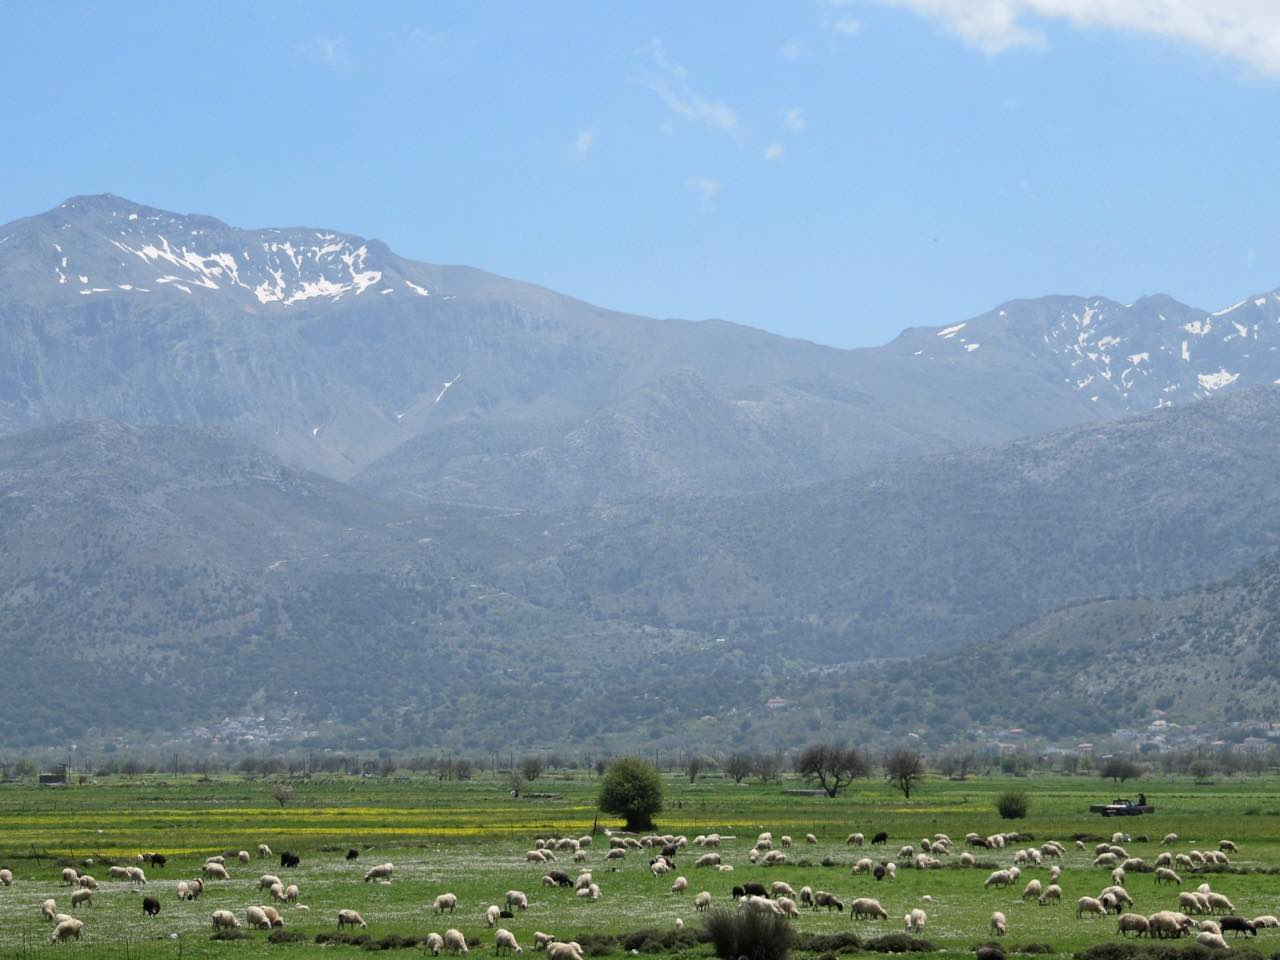 lasithi plateau, dikti mountains, nature crete, spring holidays,